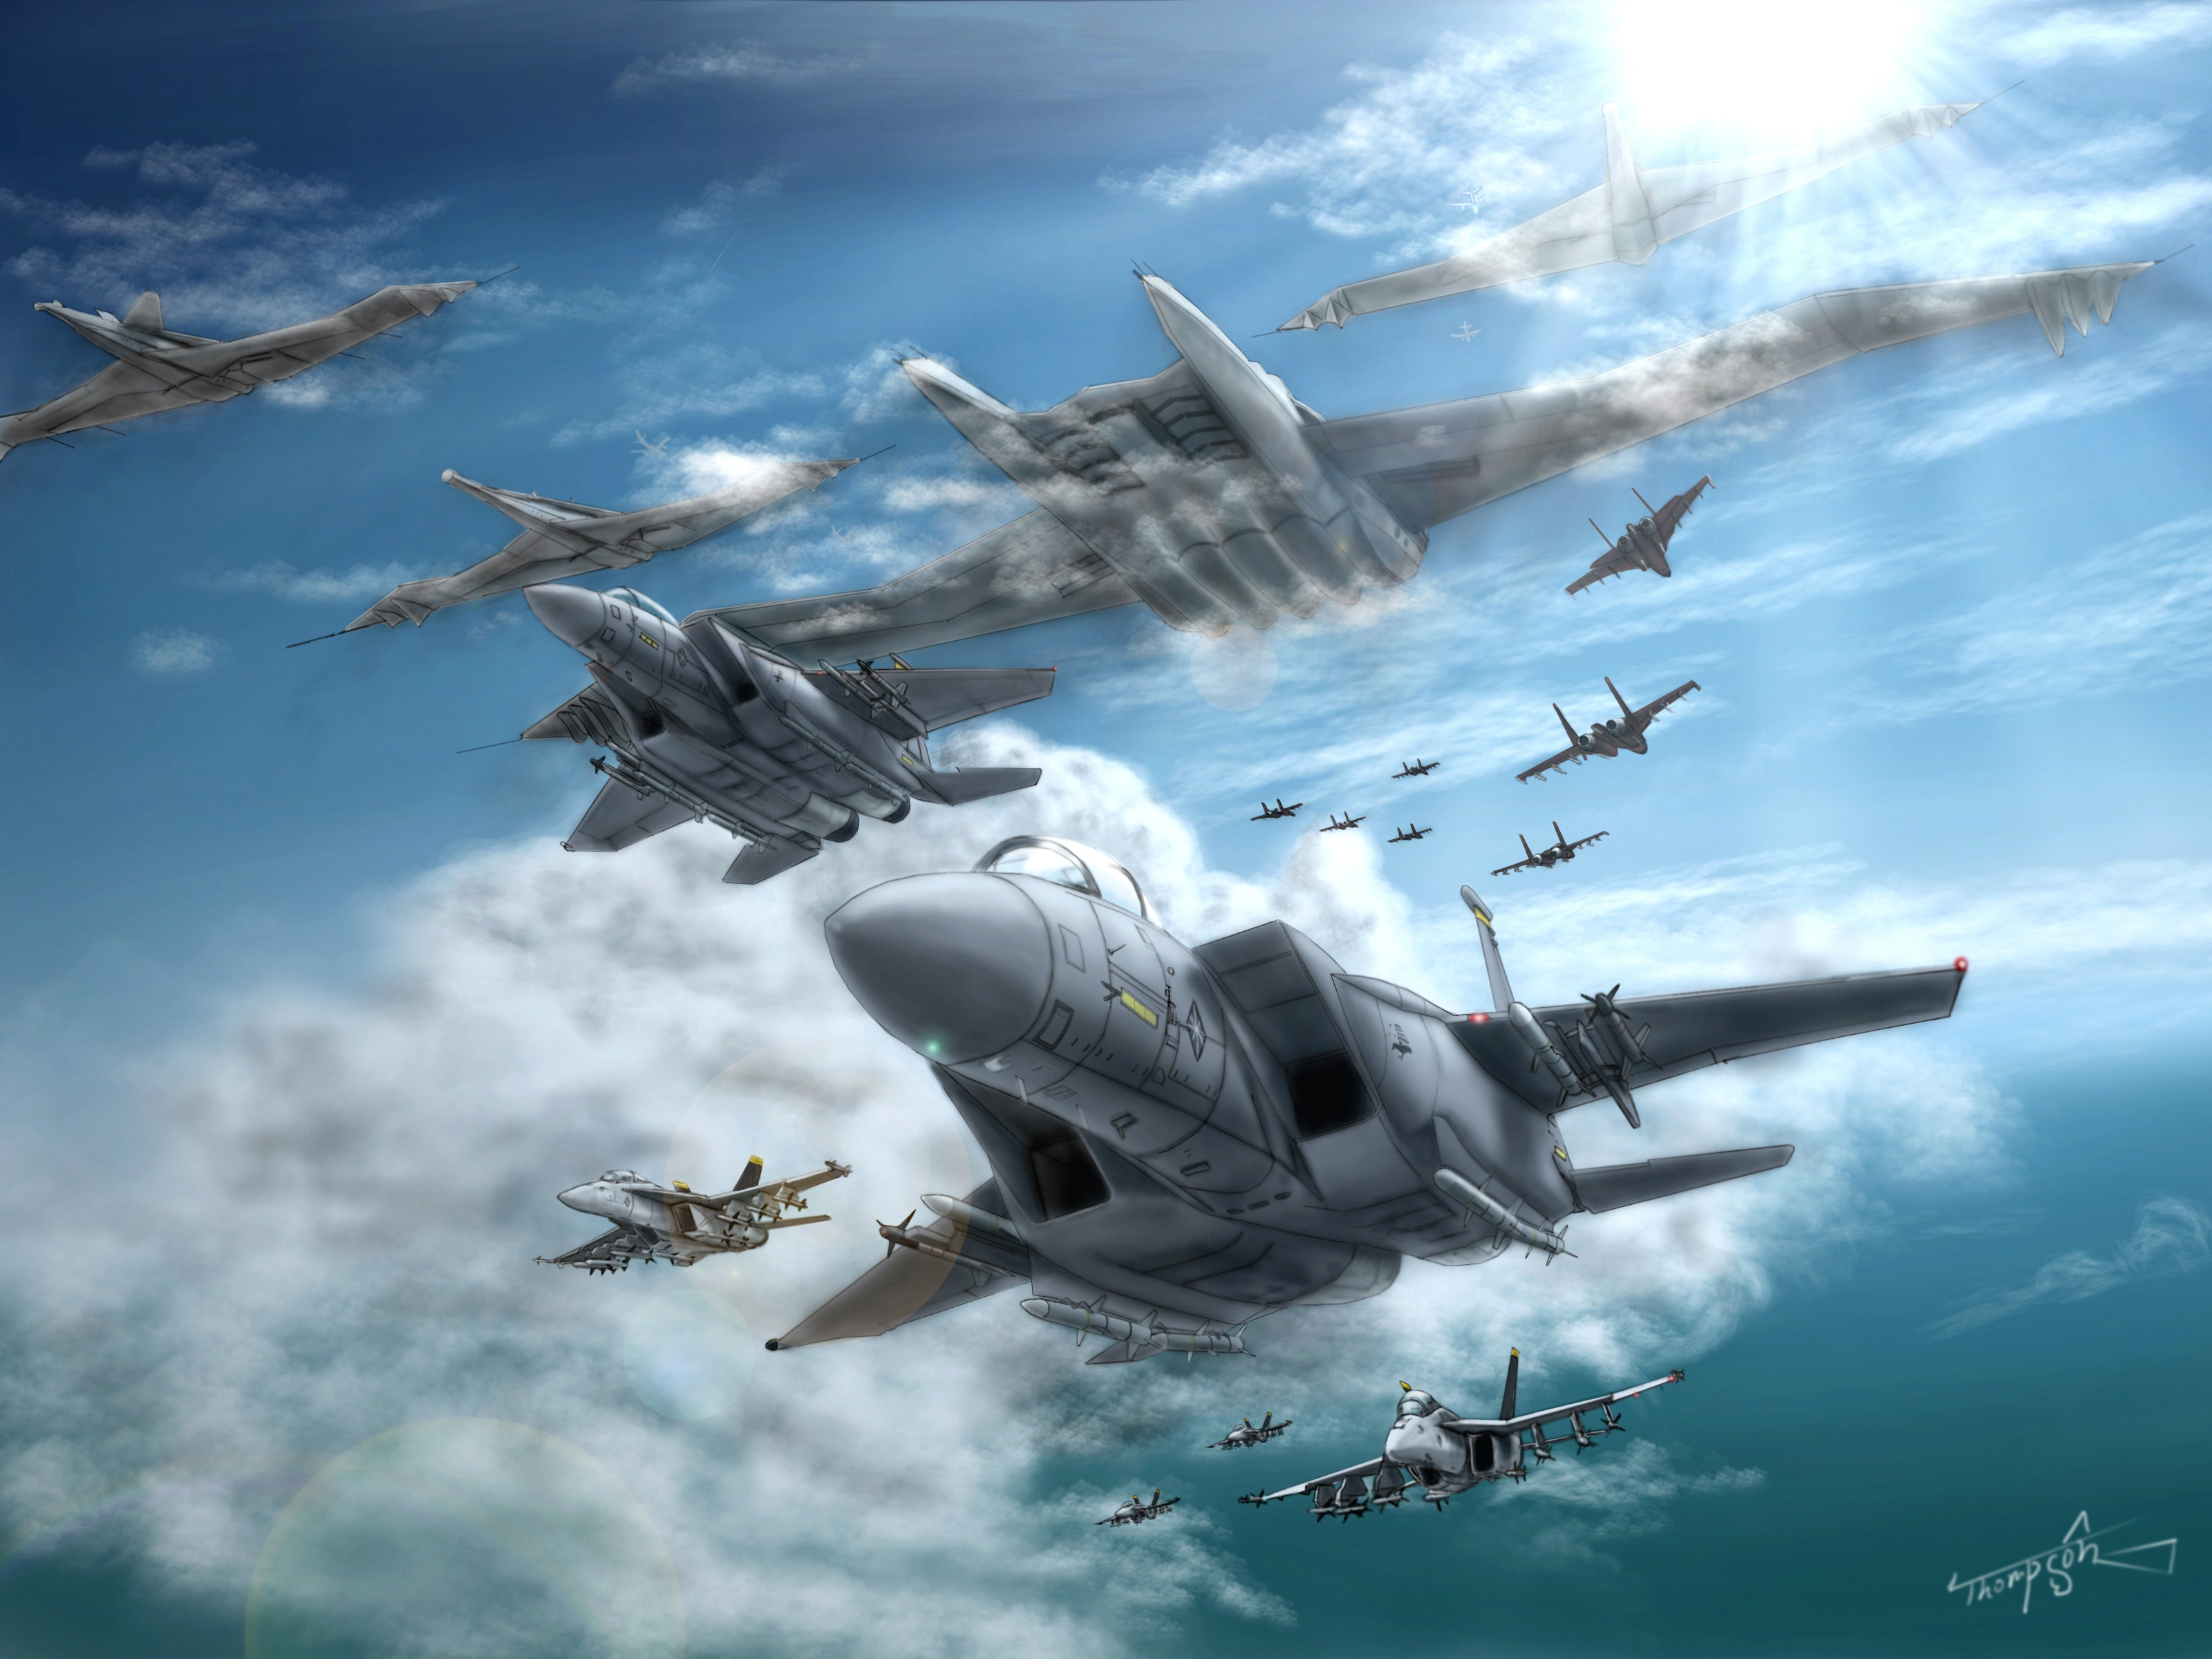 ace combat game jet airplane aircraft fighter plane military battle